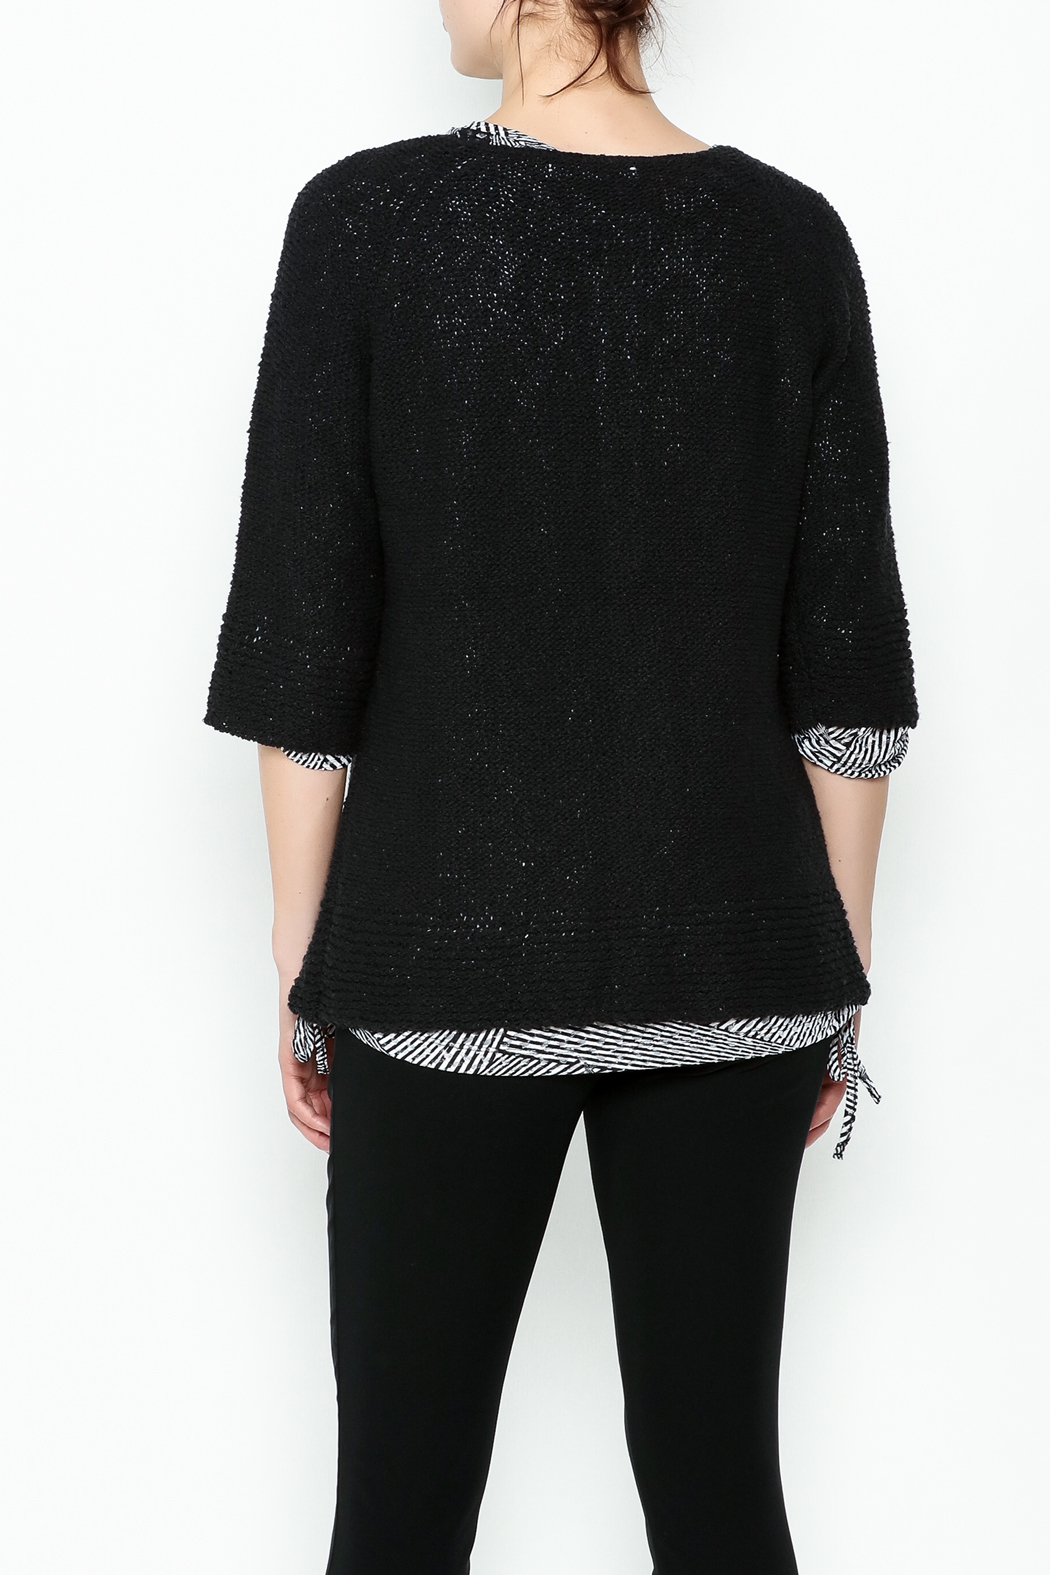 Lulu B Raglan Black Cardigan - Back Cropped Image